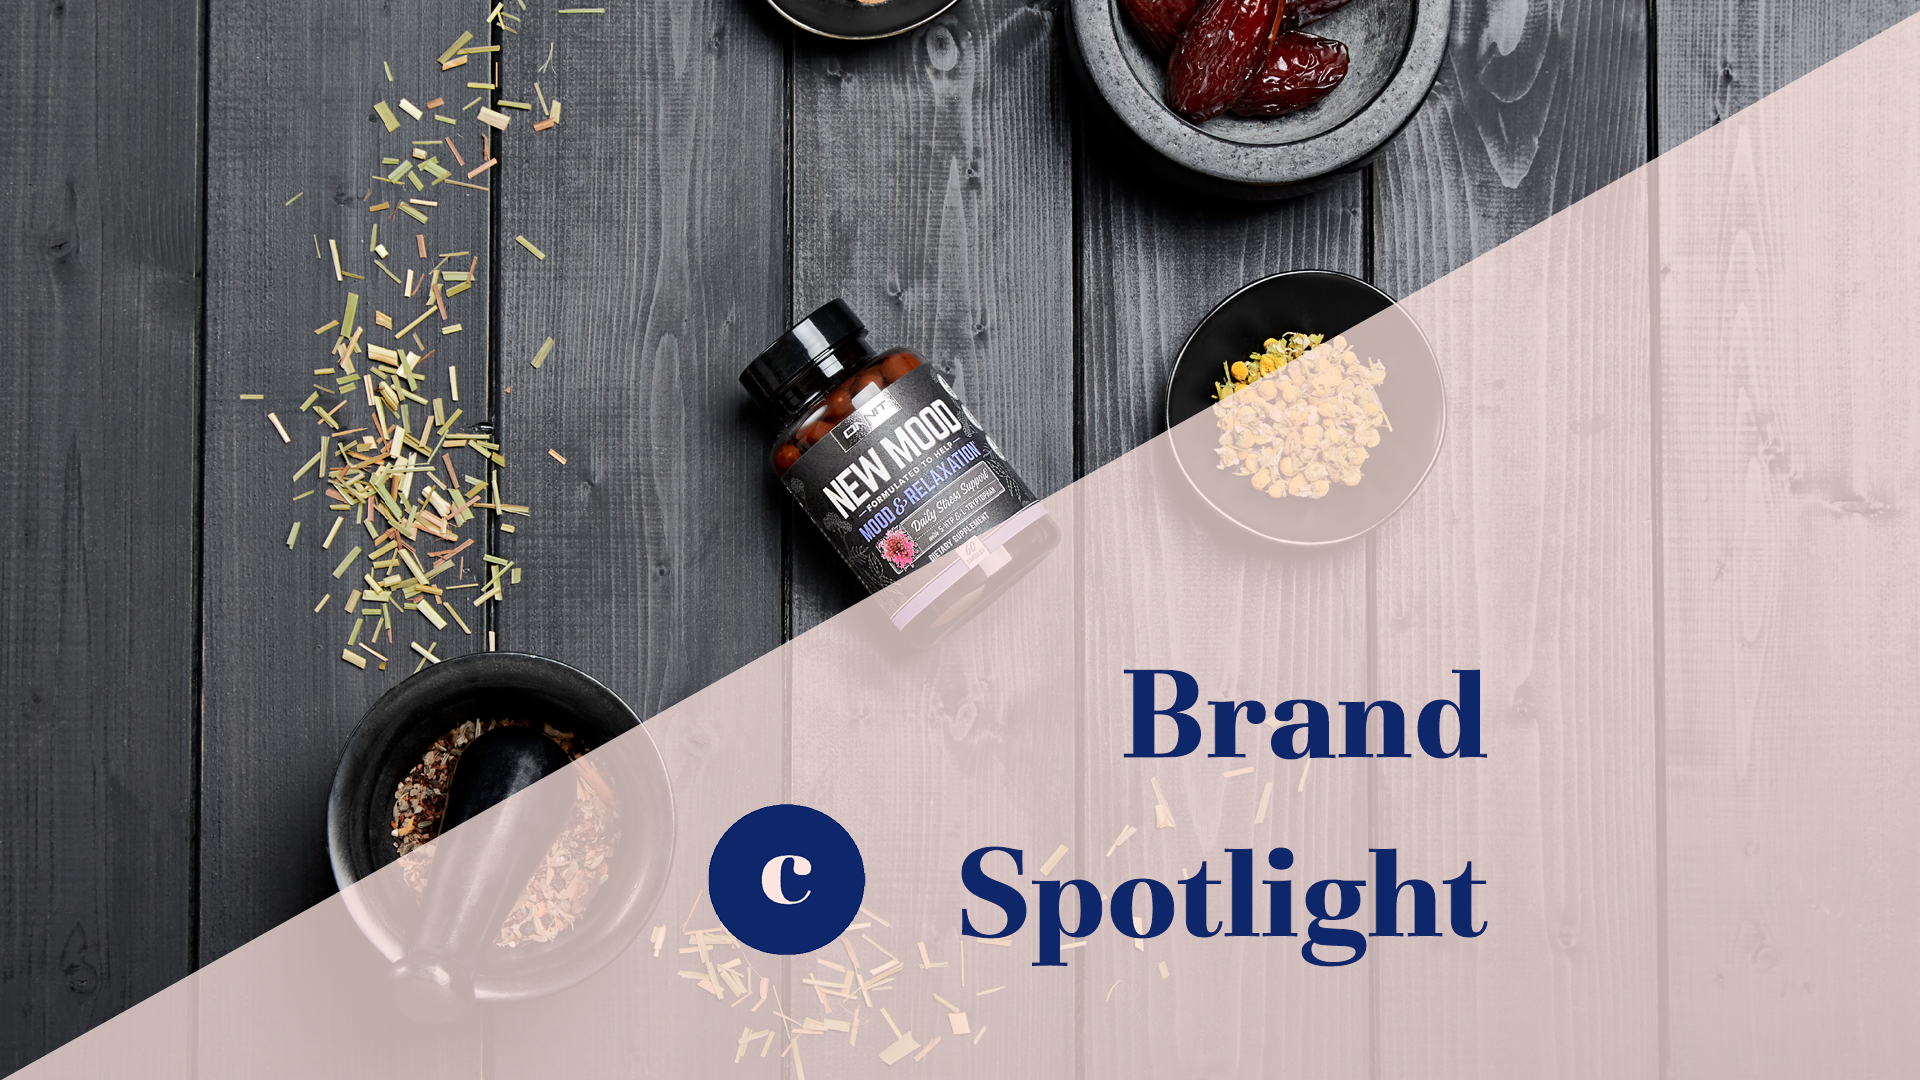 Brand Spotlight. ONNIT - New Mood.